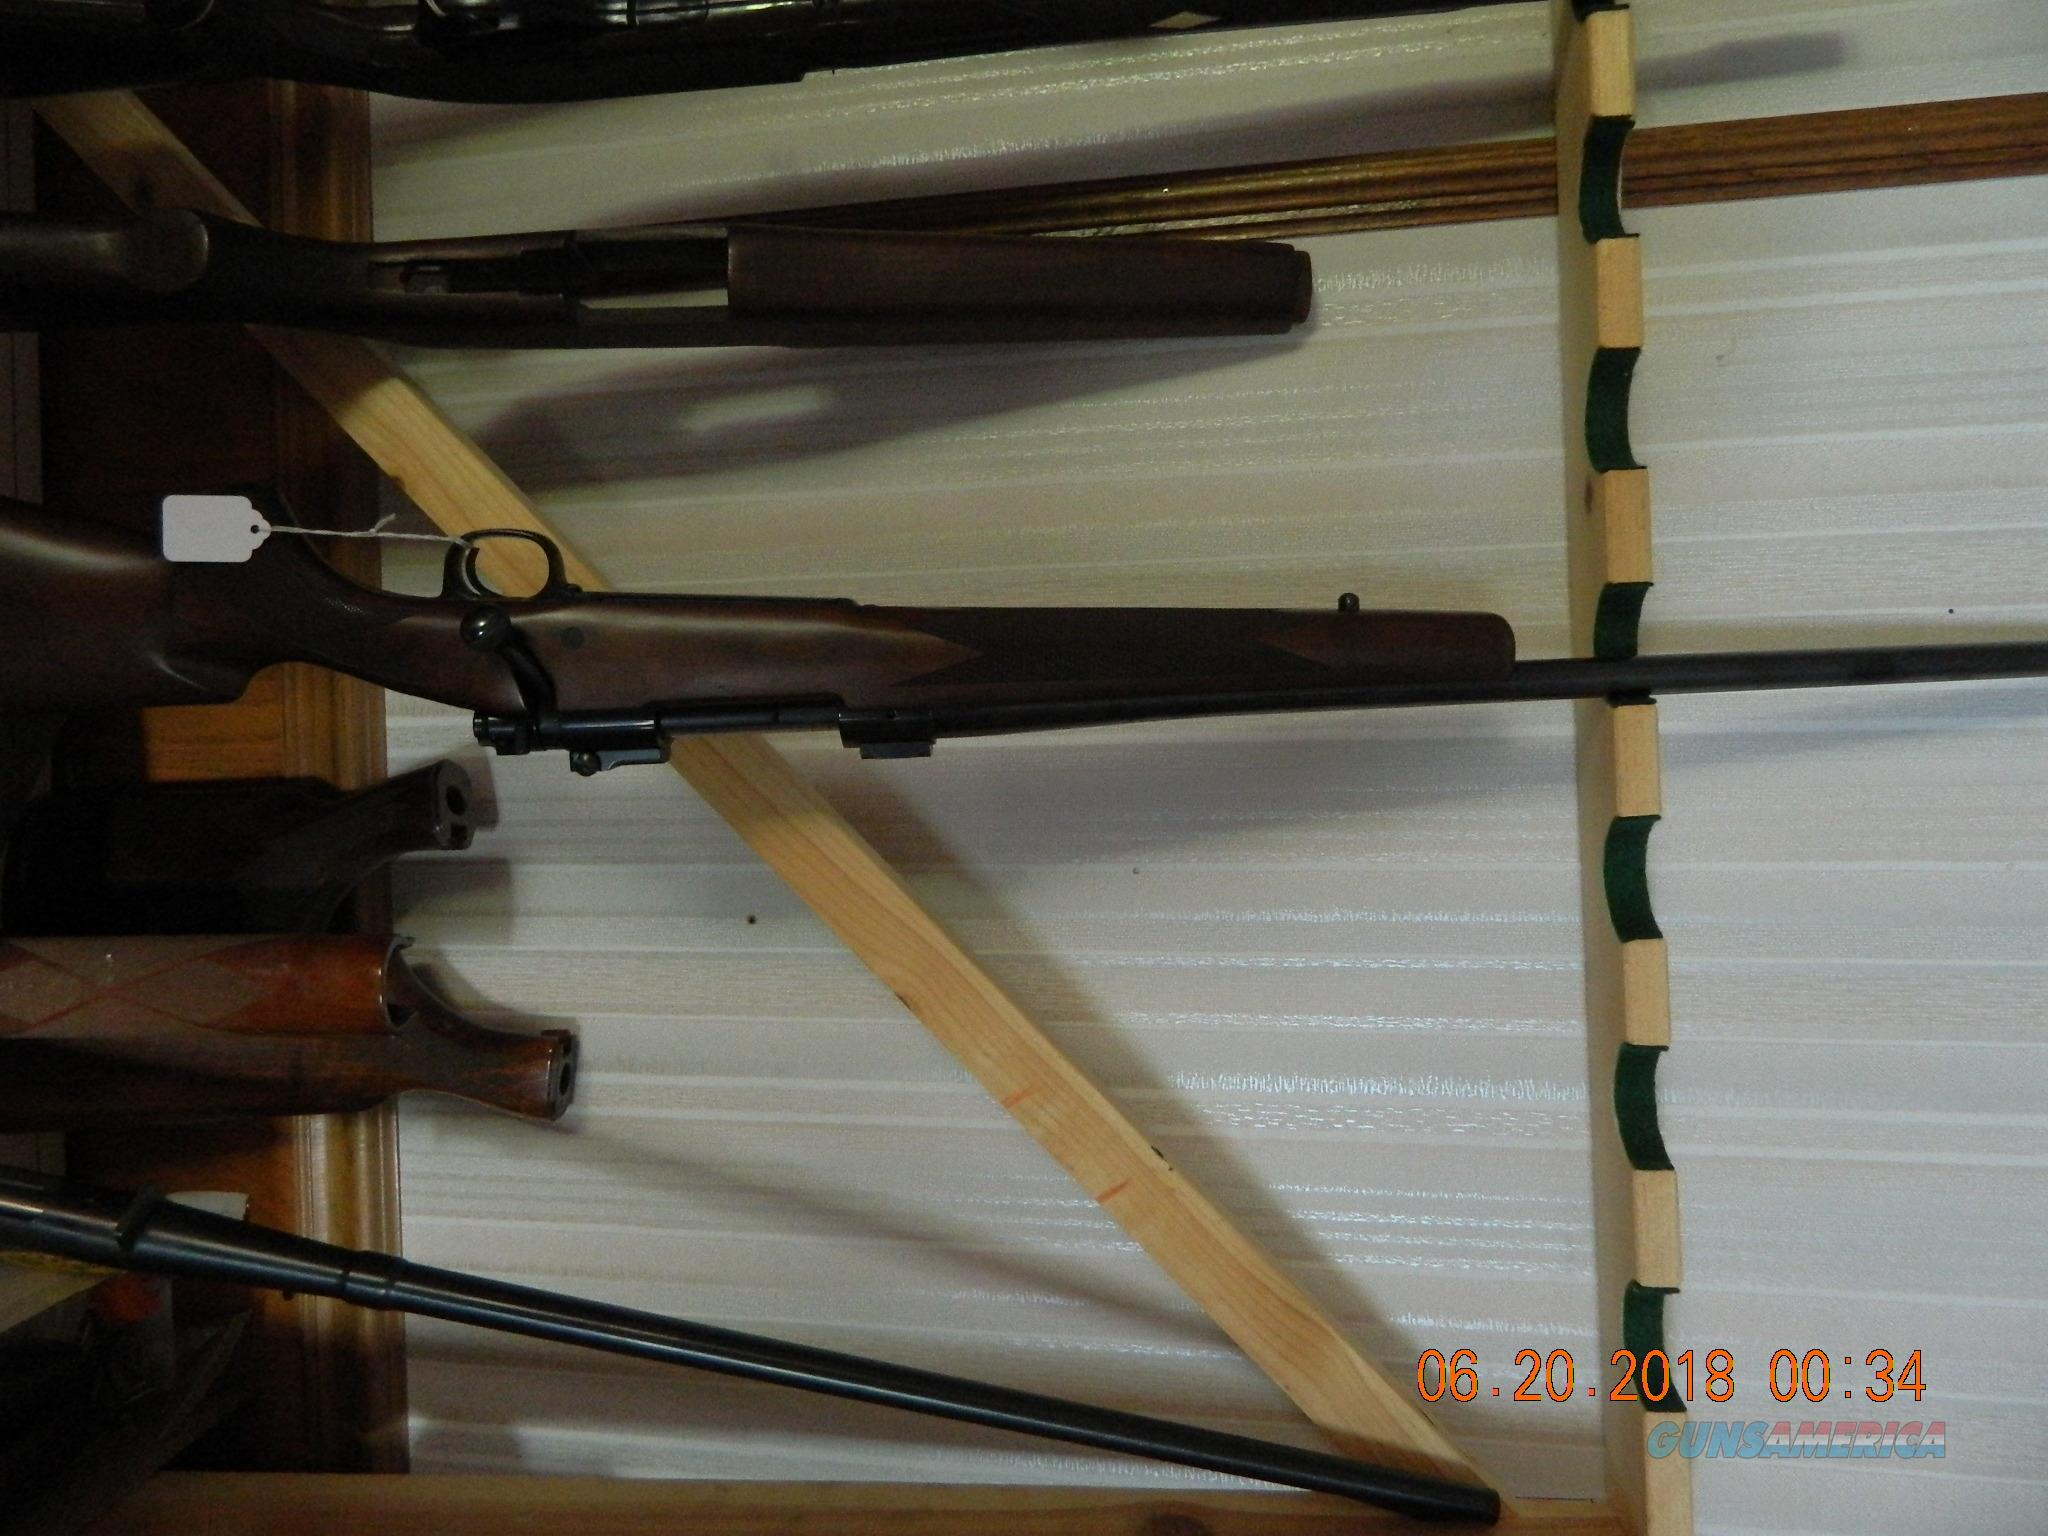 Winchester model 70 300 win mag LEFTY  Guns > Rifles > Winchester Rifles - Modern Bolt/Auto/Single > Model 70 > Post-64